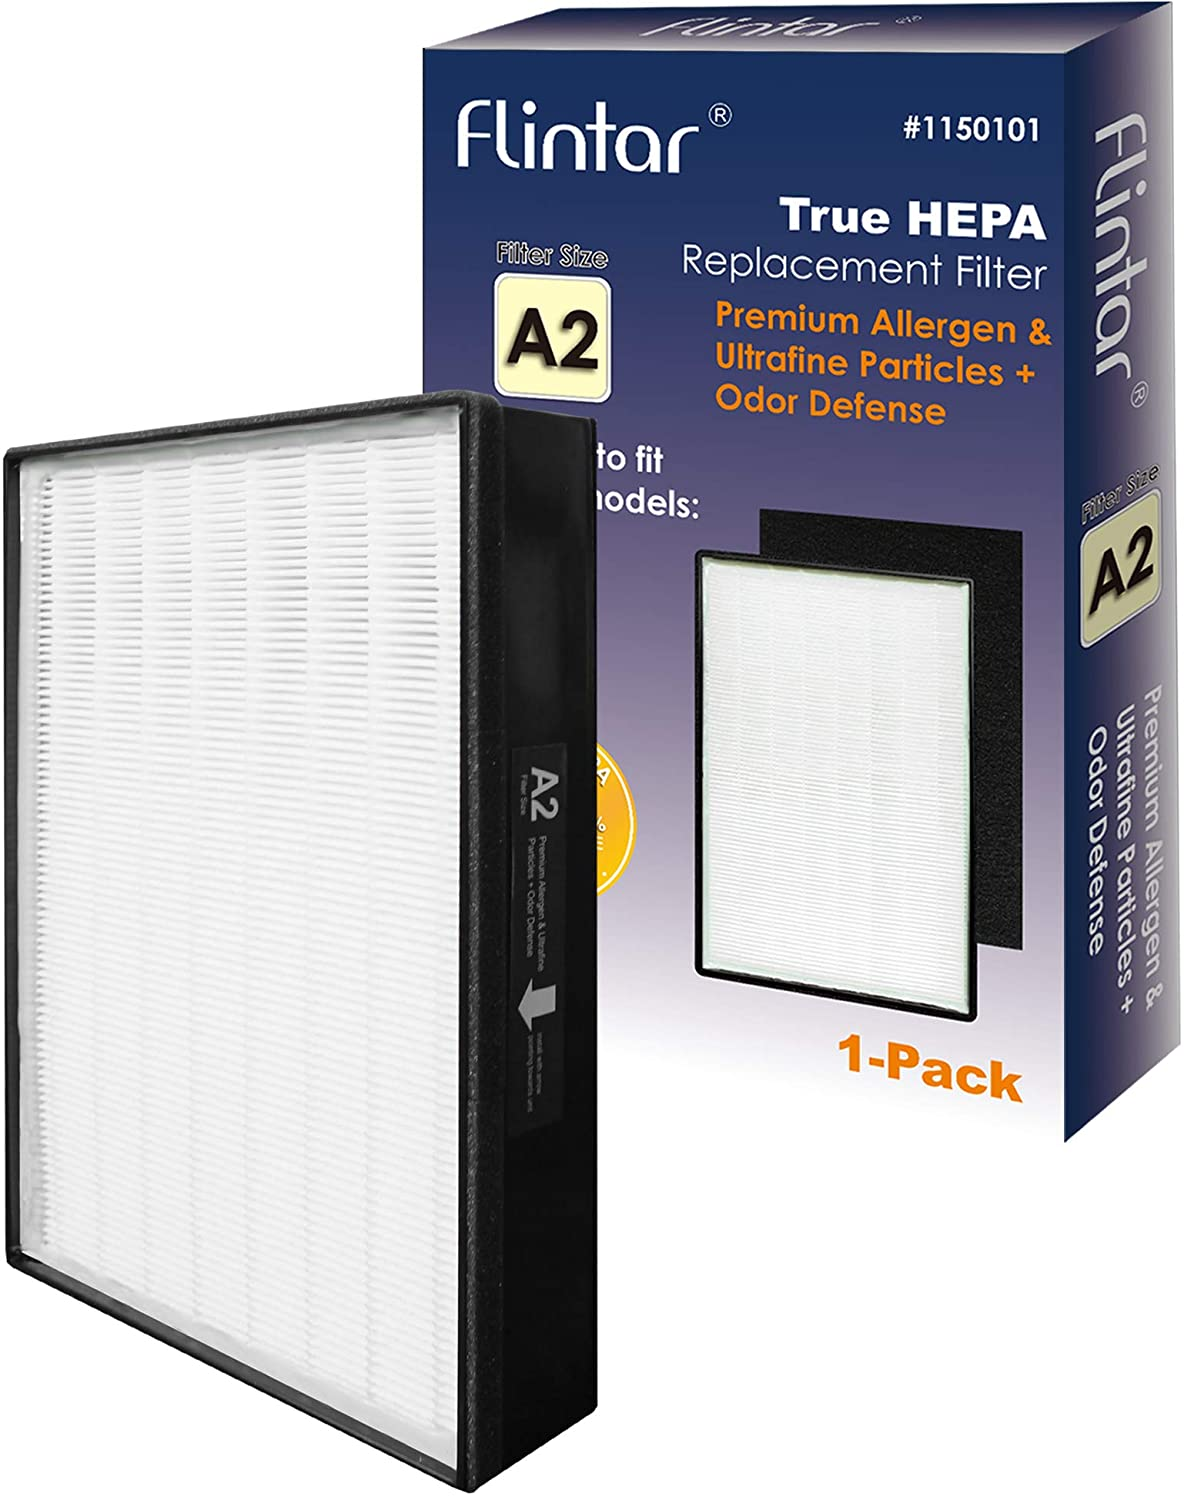 Flintar Type A2 H13 Medical Grade True HEPA Replacement Filter, Compatible with 3M Filtrete Room Air Purifier, Allergens Ultrafine Particles + Odor Defense, Part # 1150101, Filter A2, 1-Pack